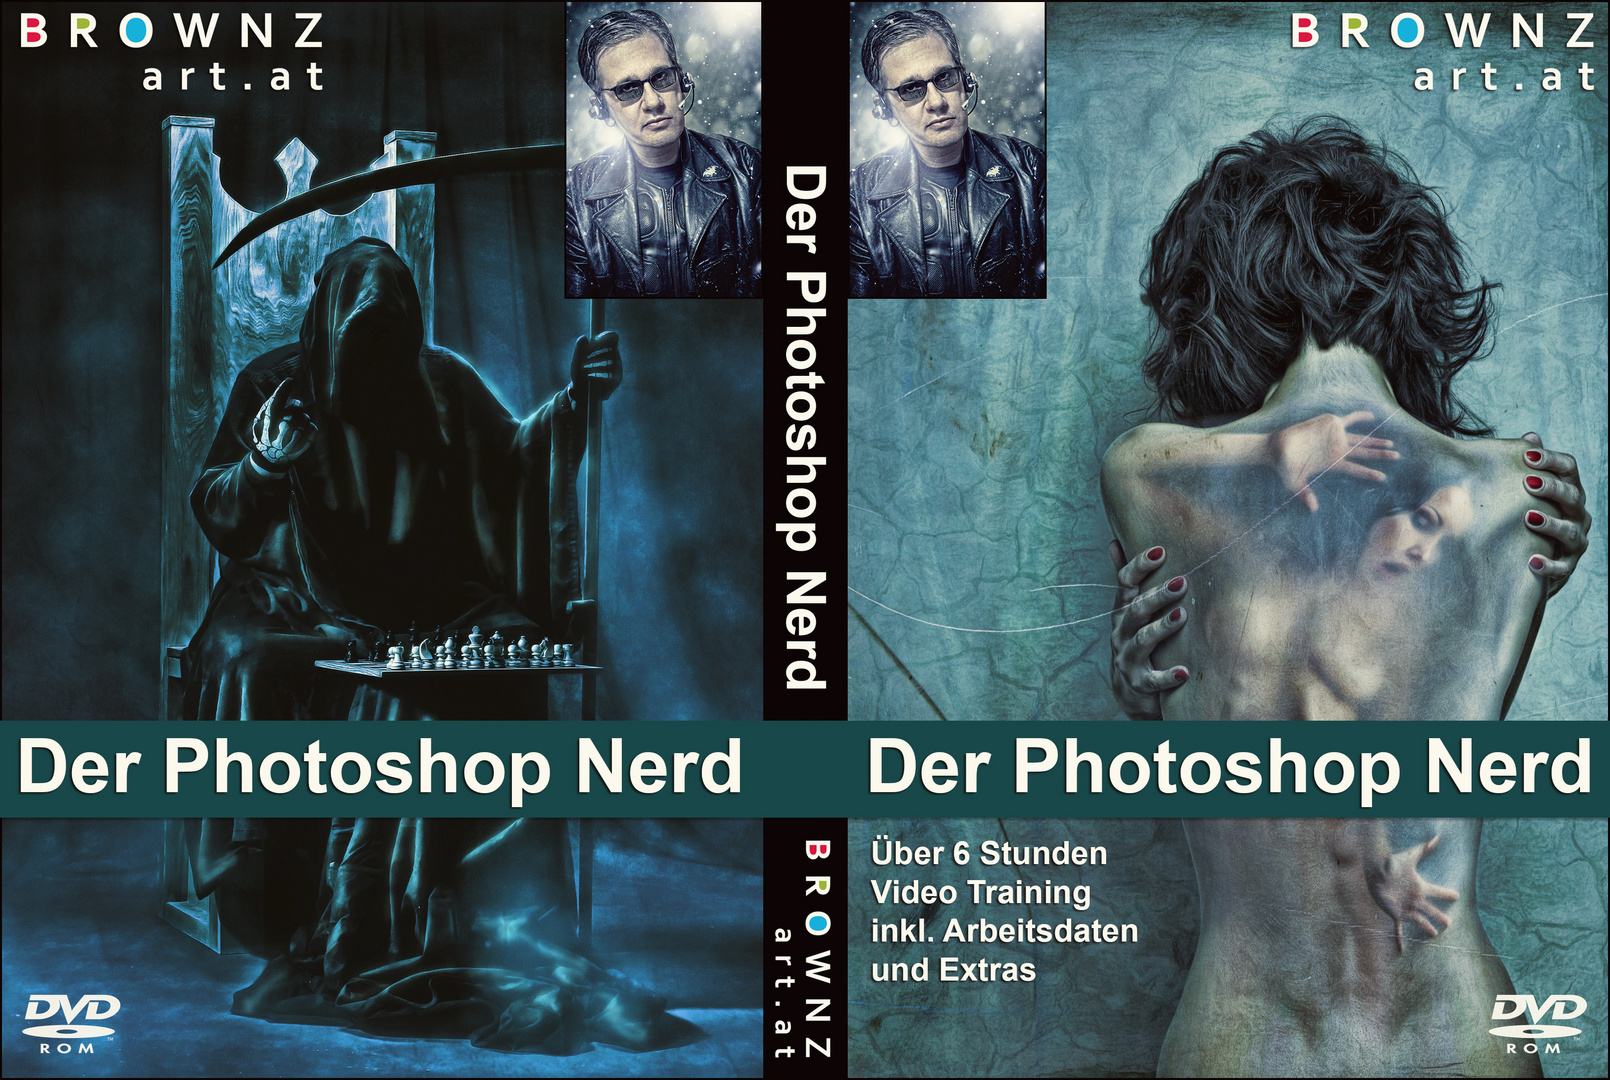 Photoshop Nerd - Coverlayout